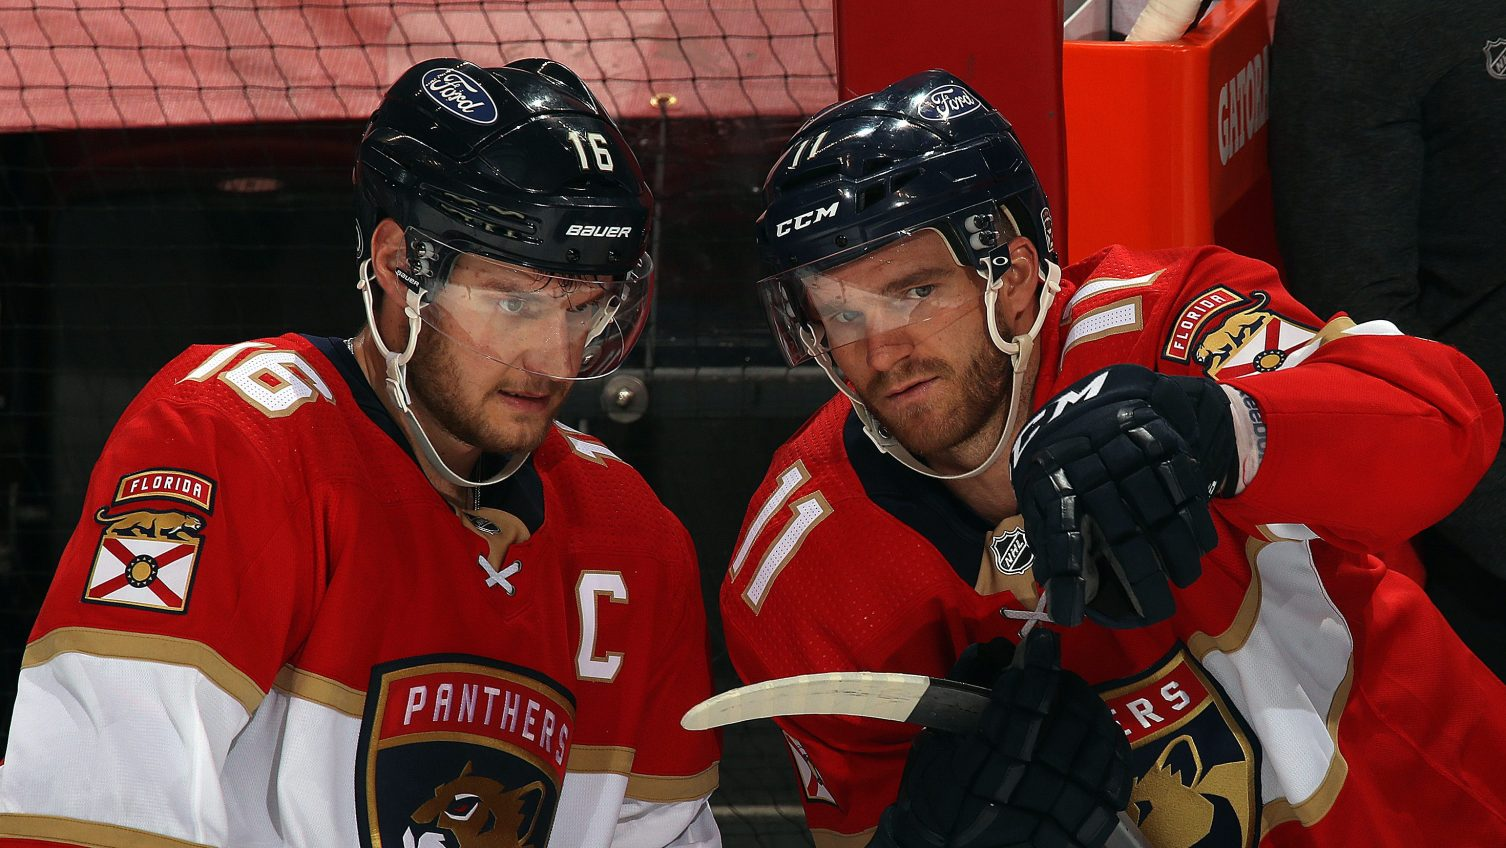 Expectations should be at all-time high for Florida Panthers